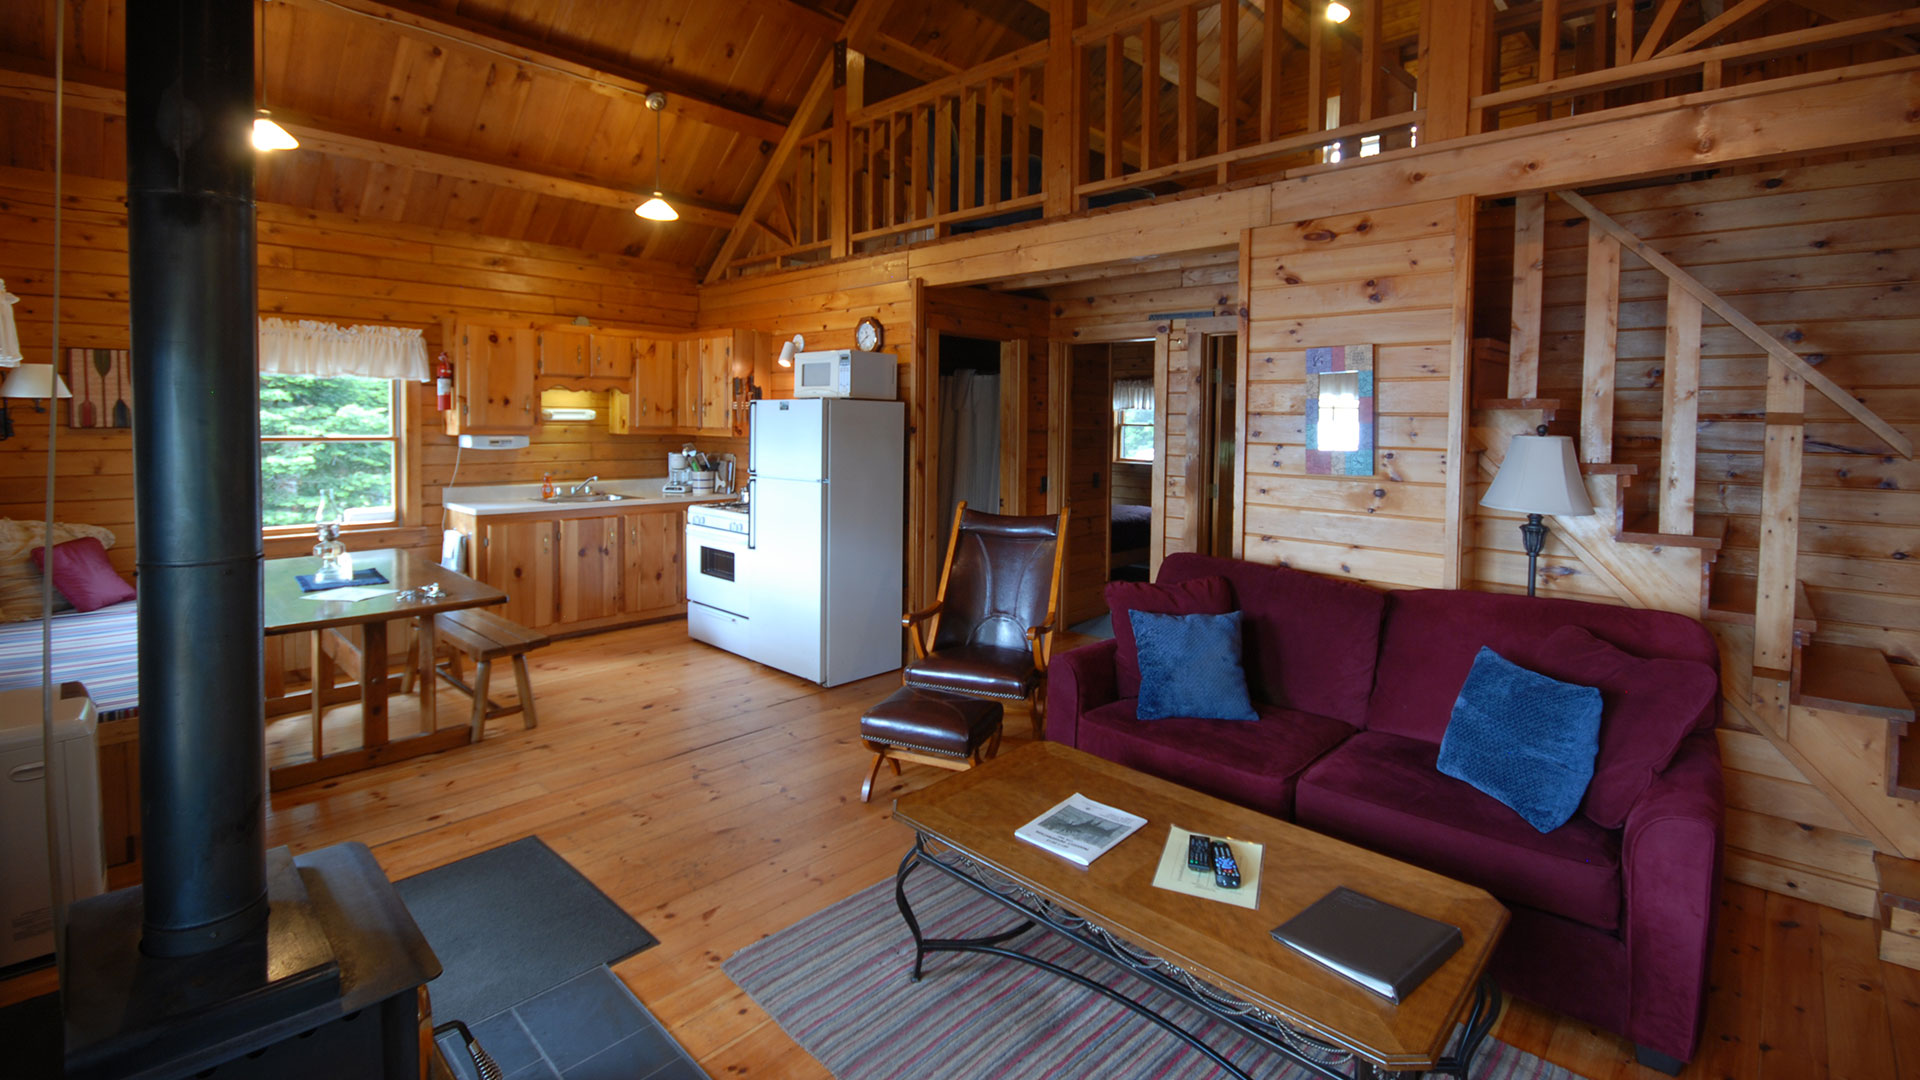 pittsburg serenity on lake lopstick rentals at watch youtube cabins the first cabin nh